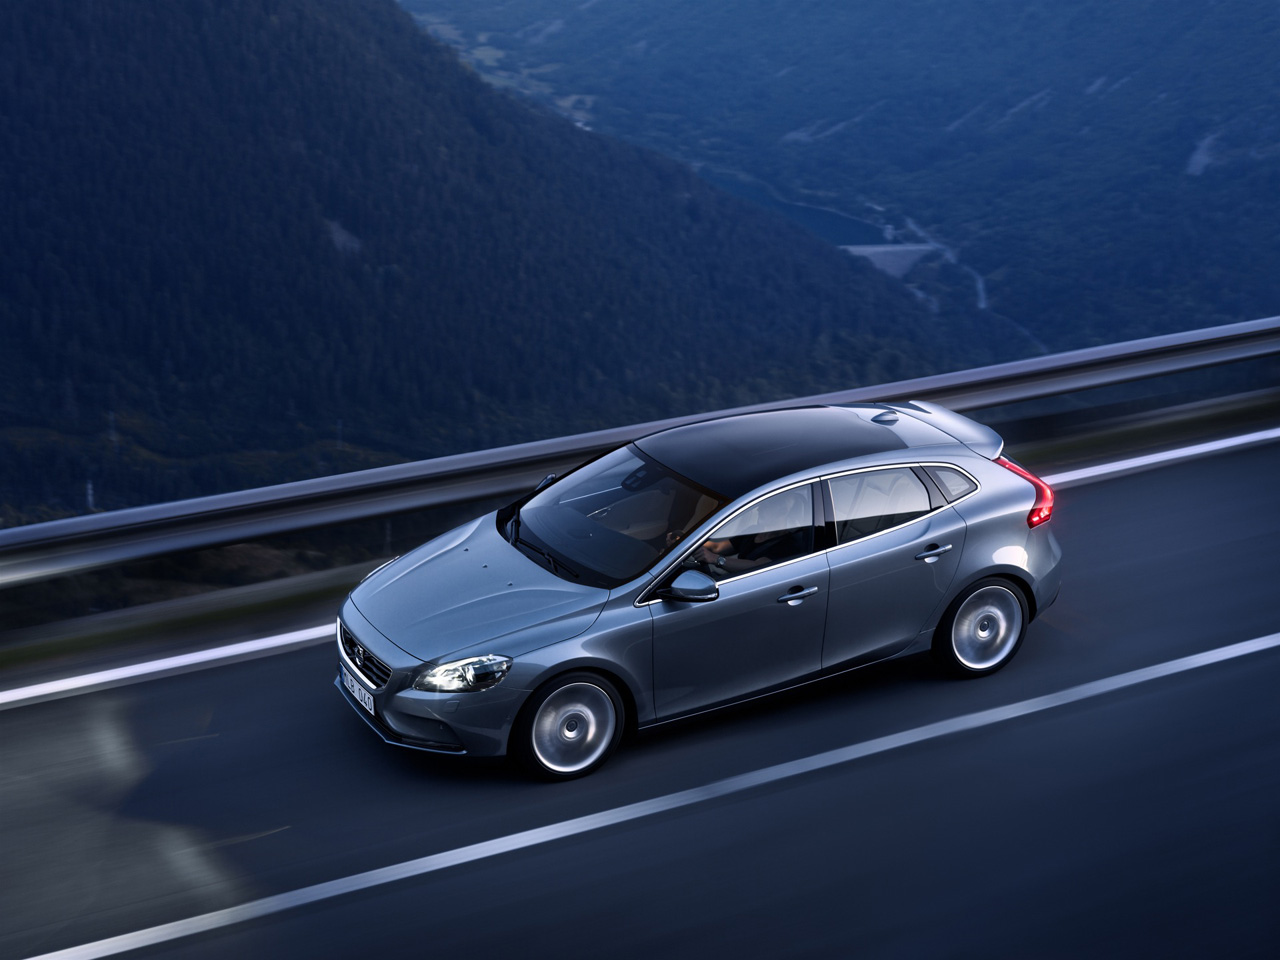 Volvo V40 Not Shipping to the United States